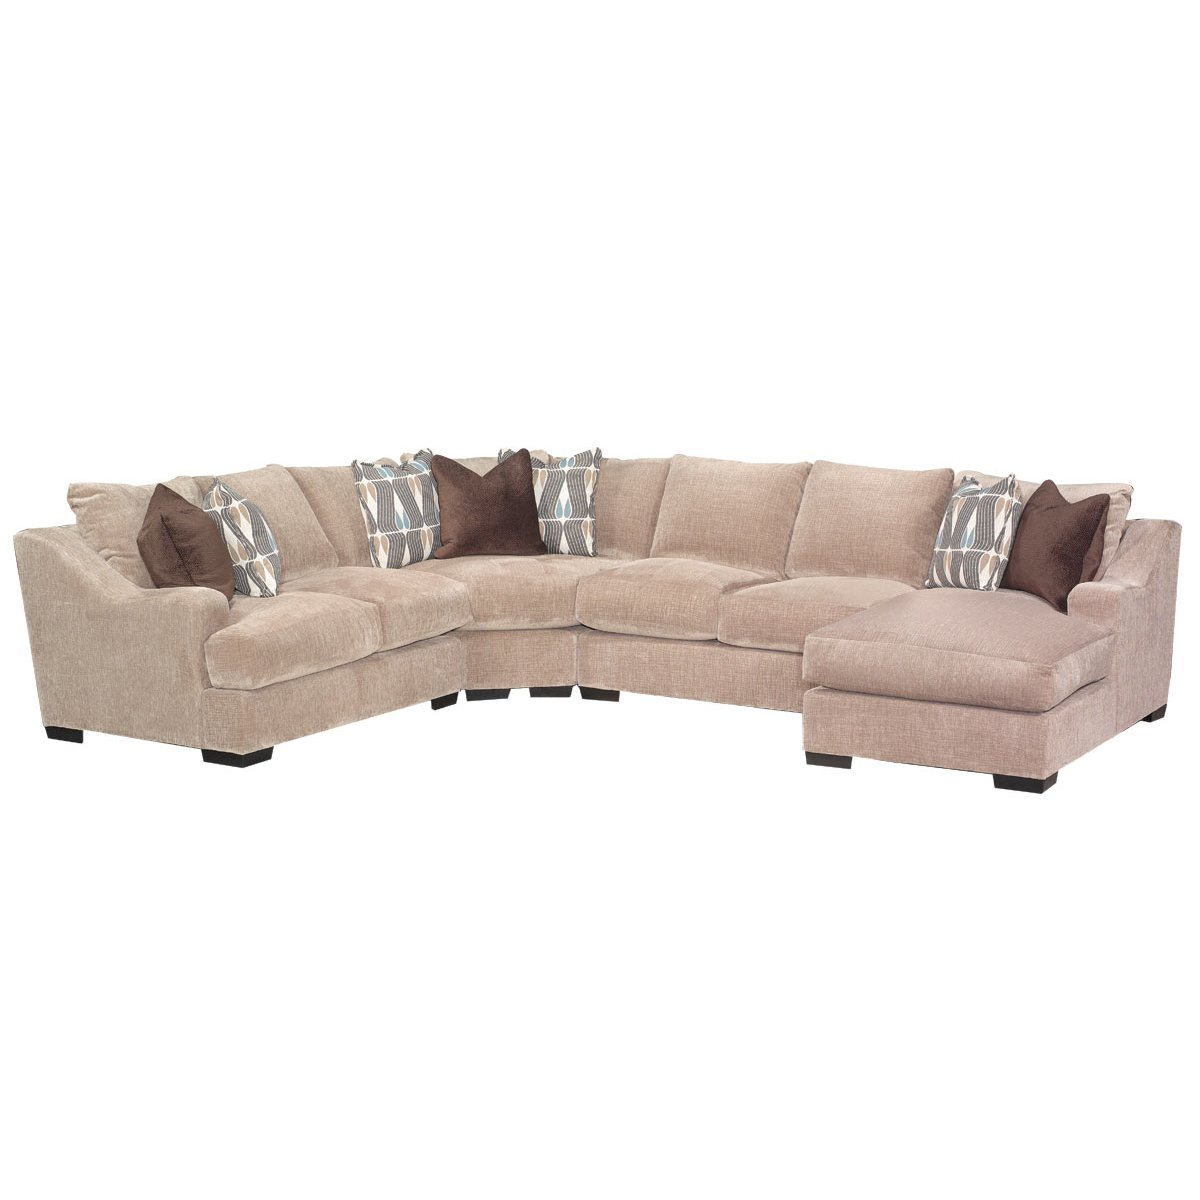 Monarch 4-Piece Brown Upholstered Sectional   RC Willey Furniture Store  sc 1 st  RC Willey : upholstered sectionals - Sectionals, Sofas & Couches